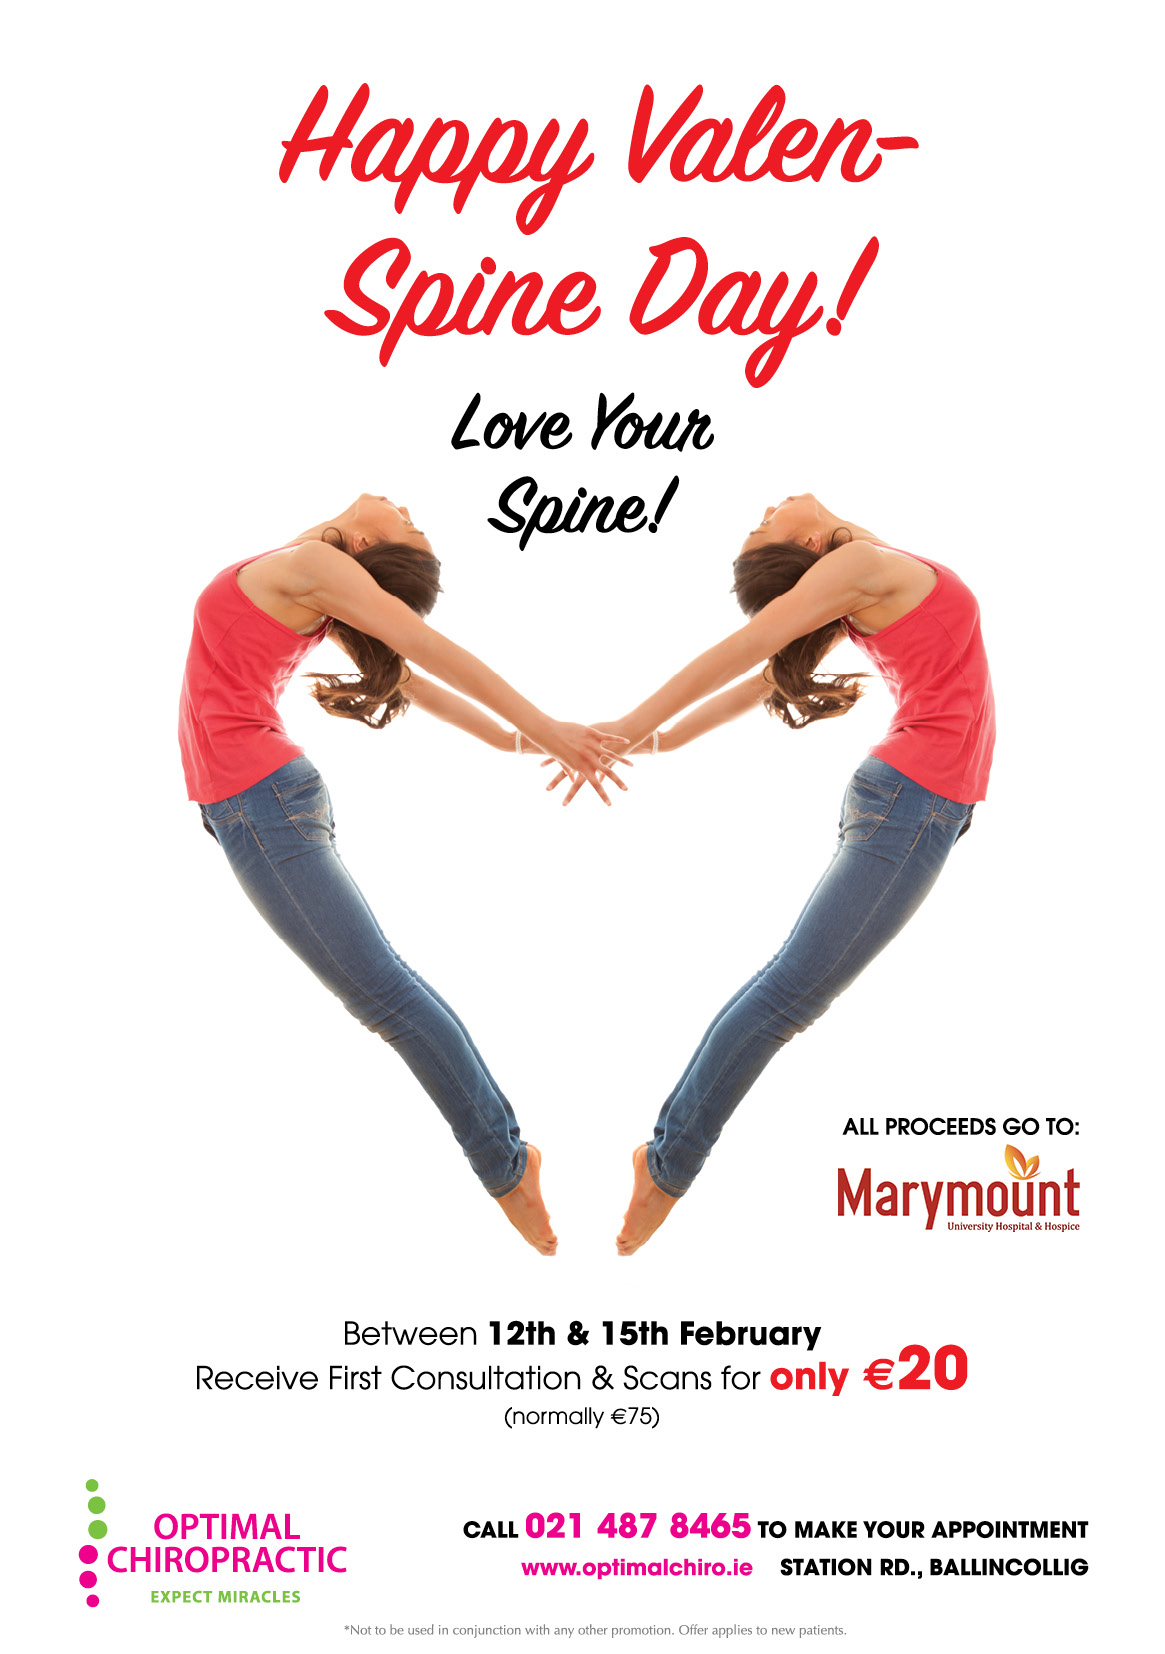 ValenSpine, Love Your Spine Promotion in aid of Marymount Hospice